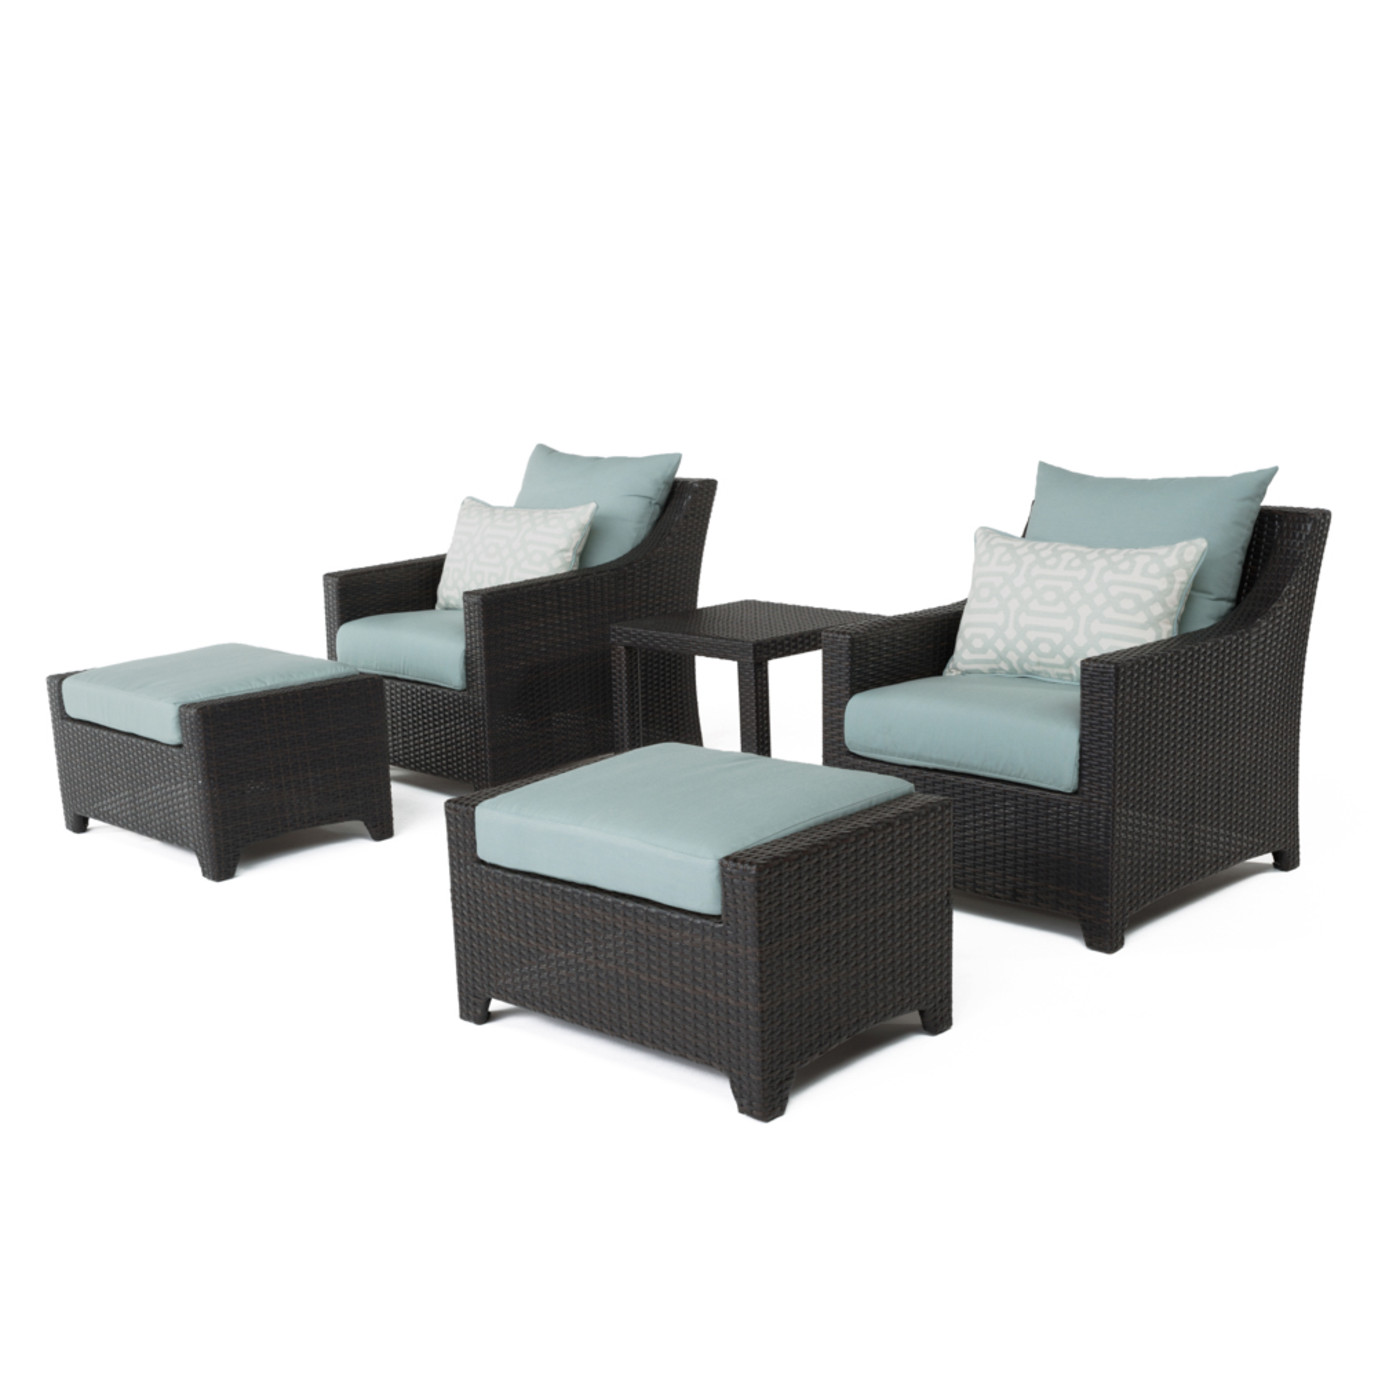 Deco™ 5pc Club Chair and Ottoman Set - Spa Blue